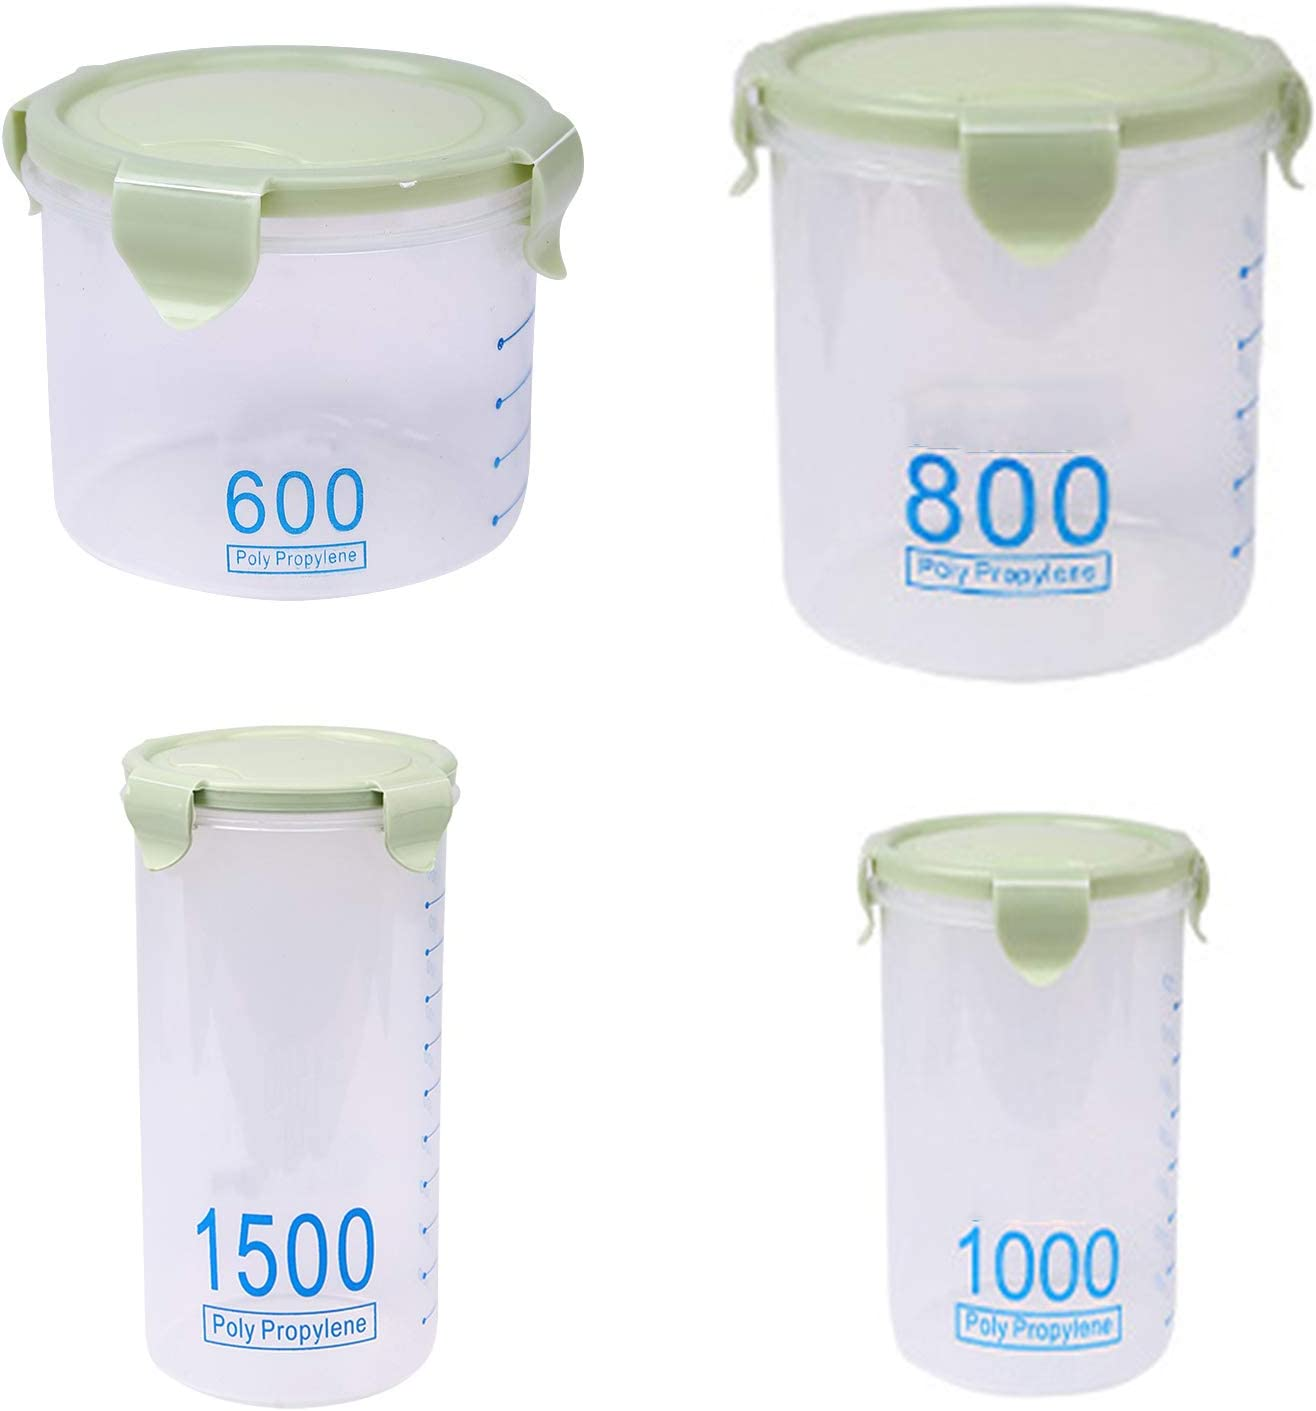 Food Storage safety Containers with Kitchen Airtight Lids Organization Portland Mall